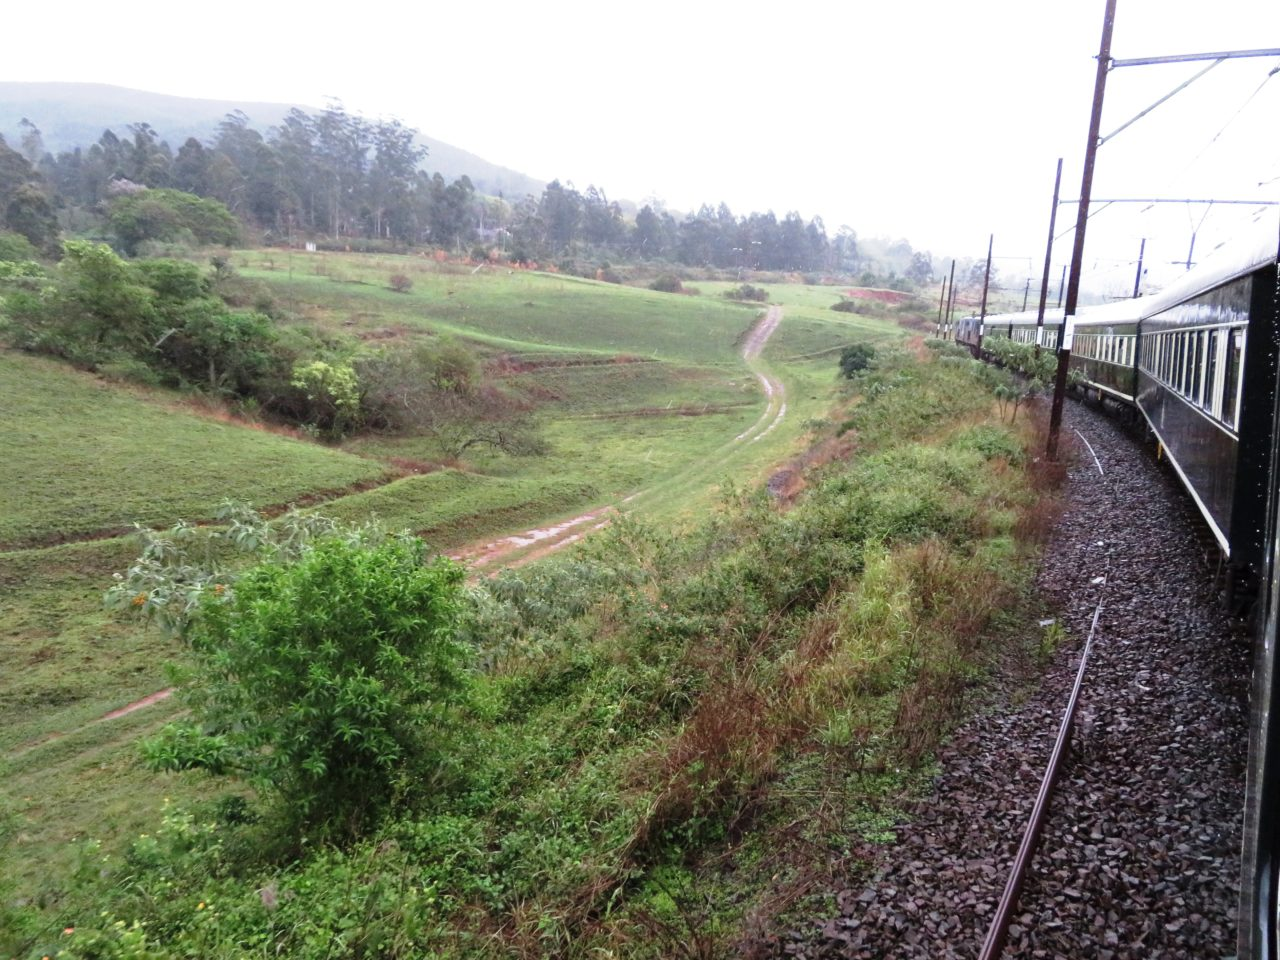 The <strong>Rovos <em>Rail</em></strong><em> Pride of Africa</em> train makes its way from Pretoria to Durban in South Africa